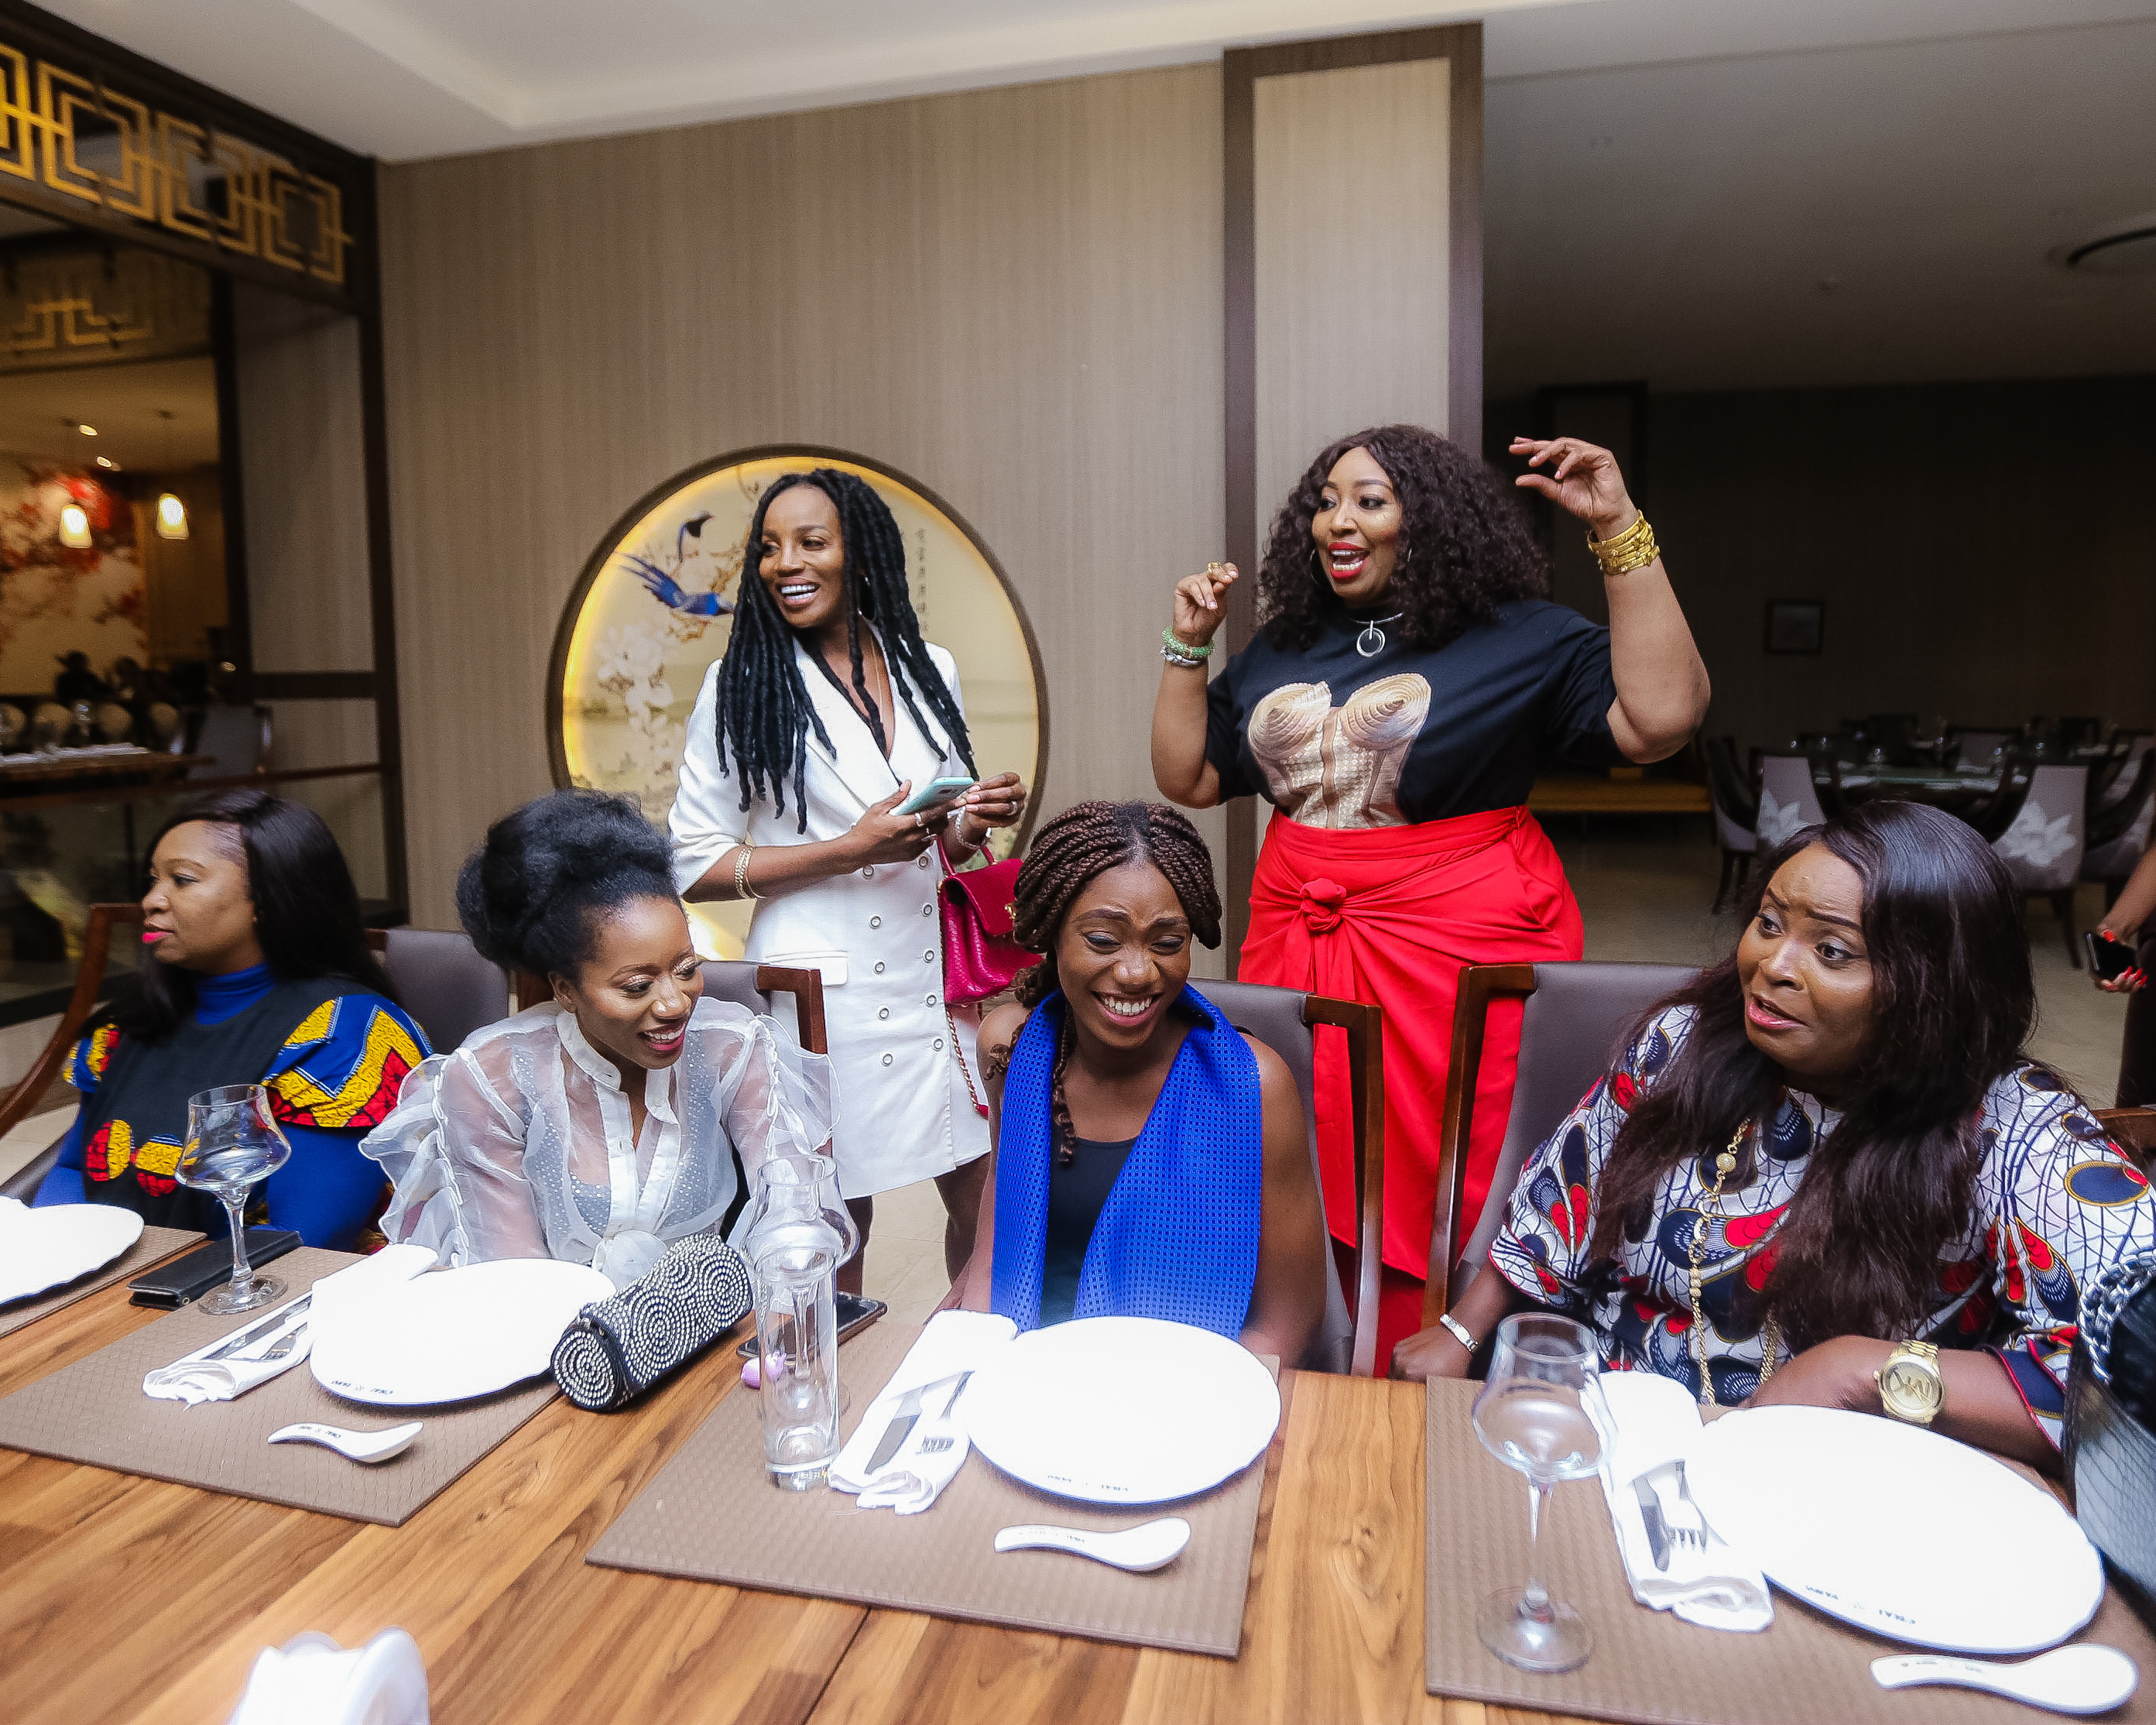 Photos: Ghana?s Becca unites Nigeria?s Female Musicians for an Evening of sisterhood